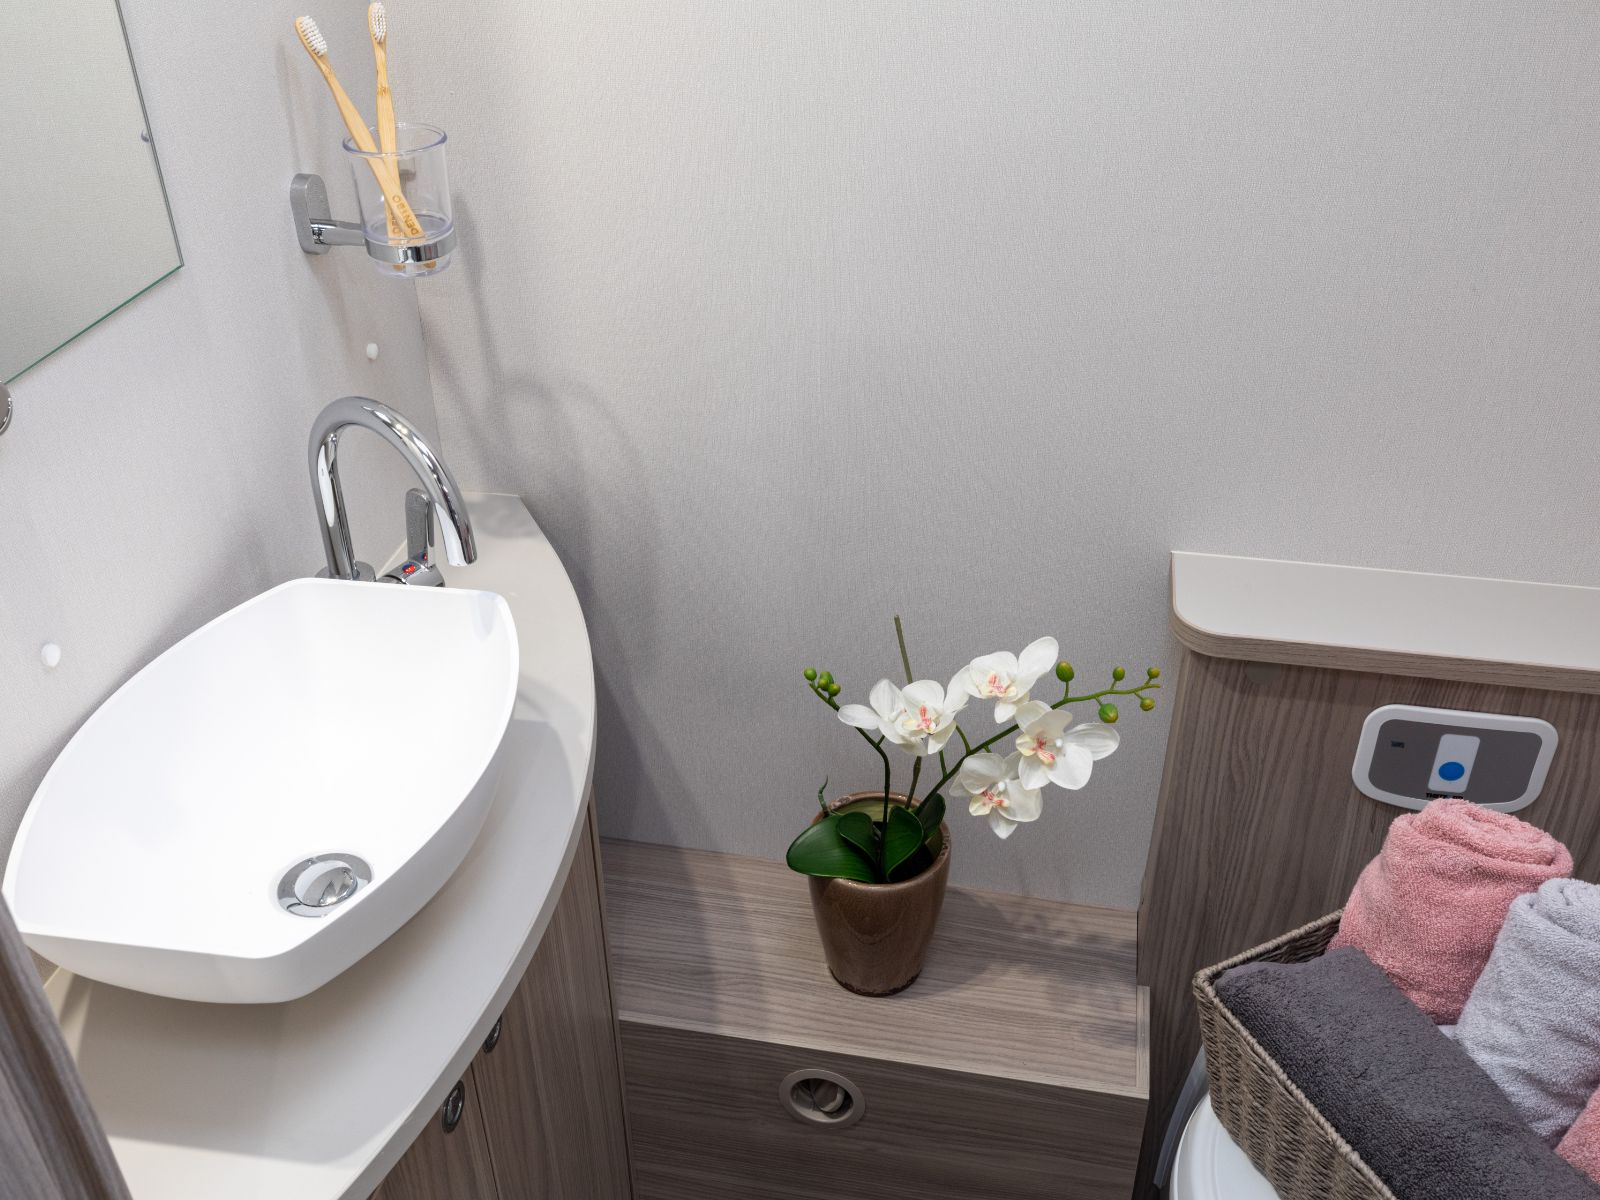 bathroom sink and plant '